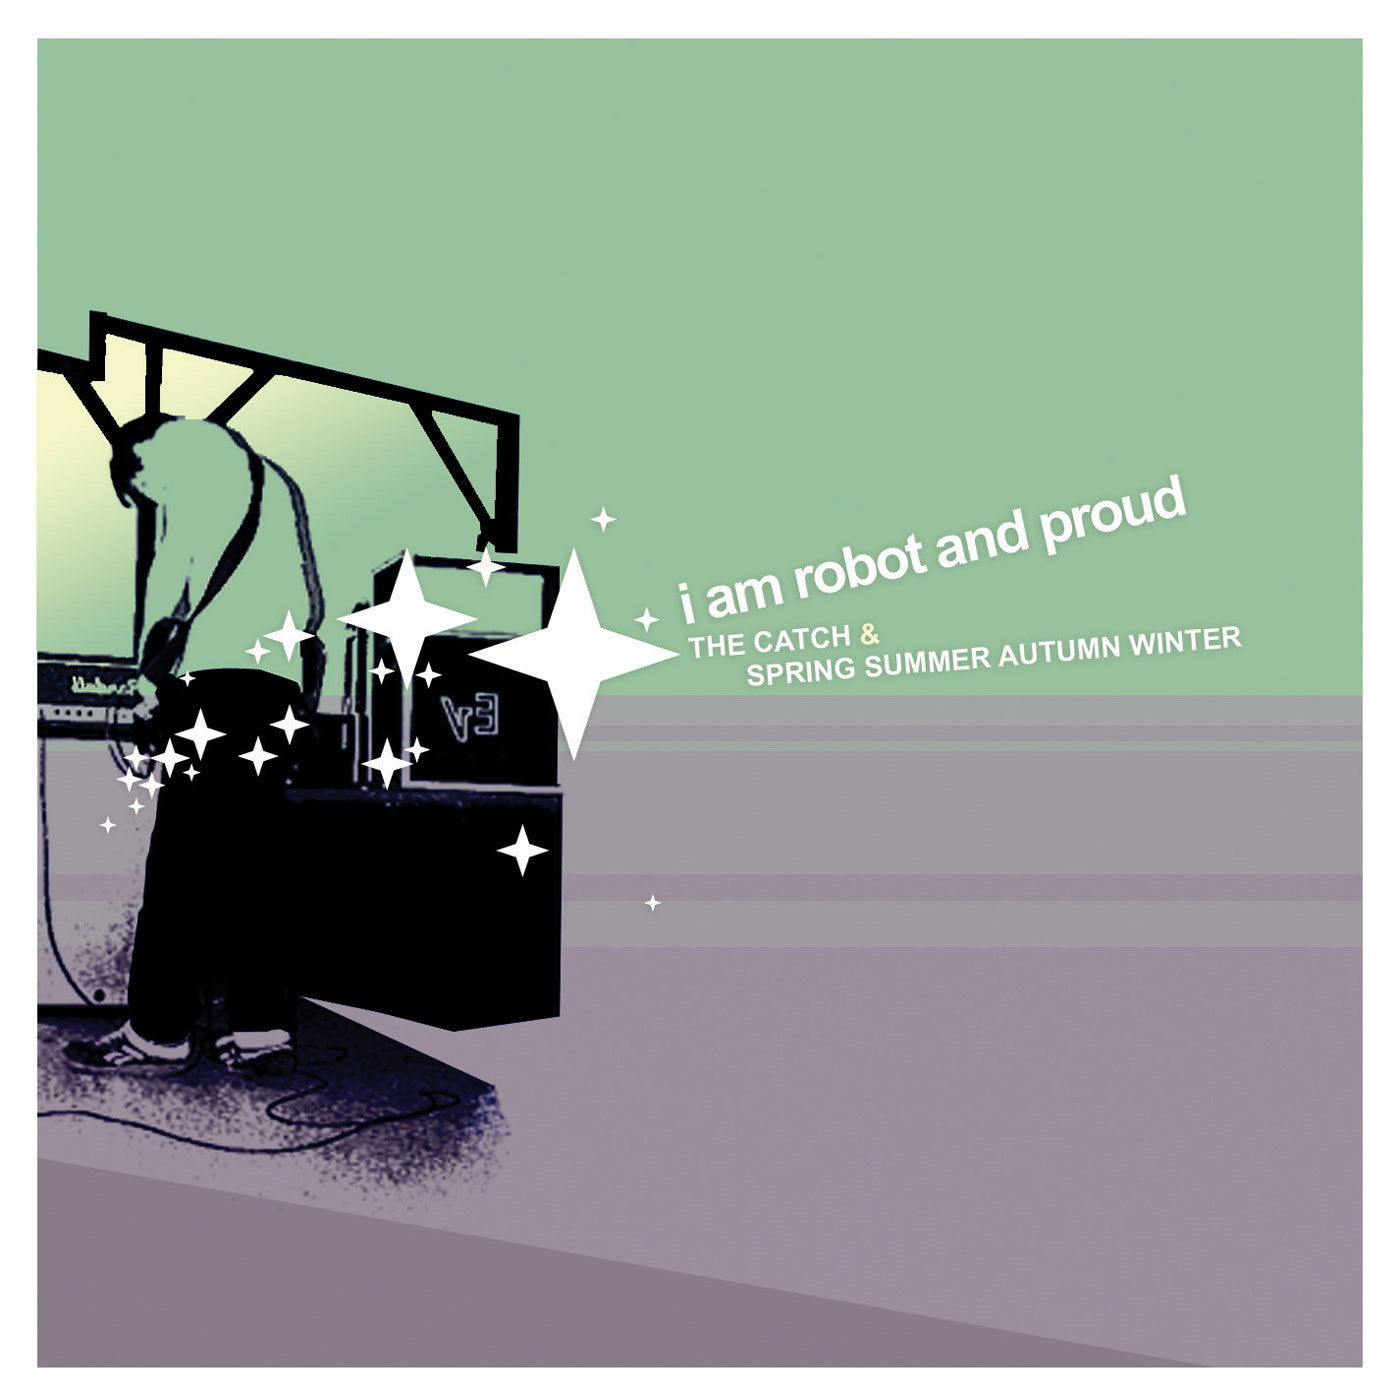 I Am Robot And Proud - The Catch & Spring Summer Autumn Winter